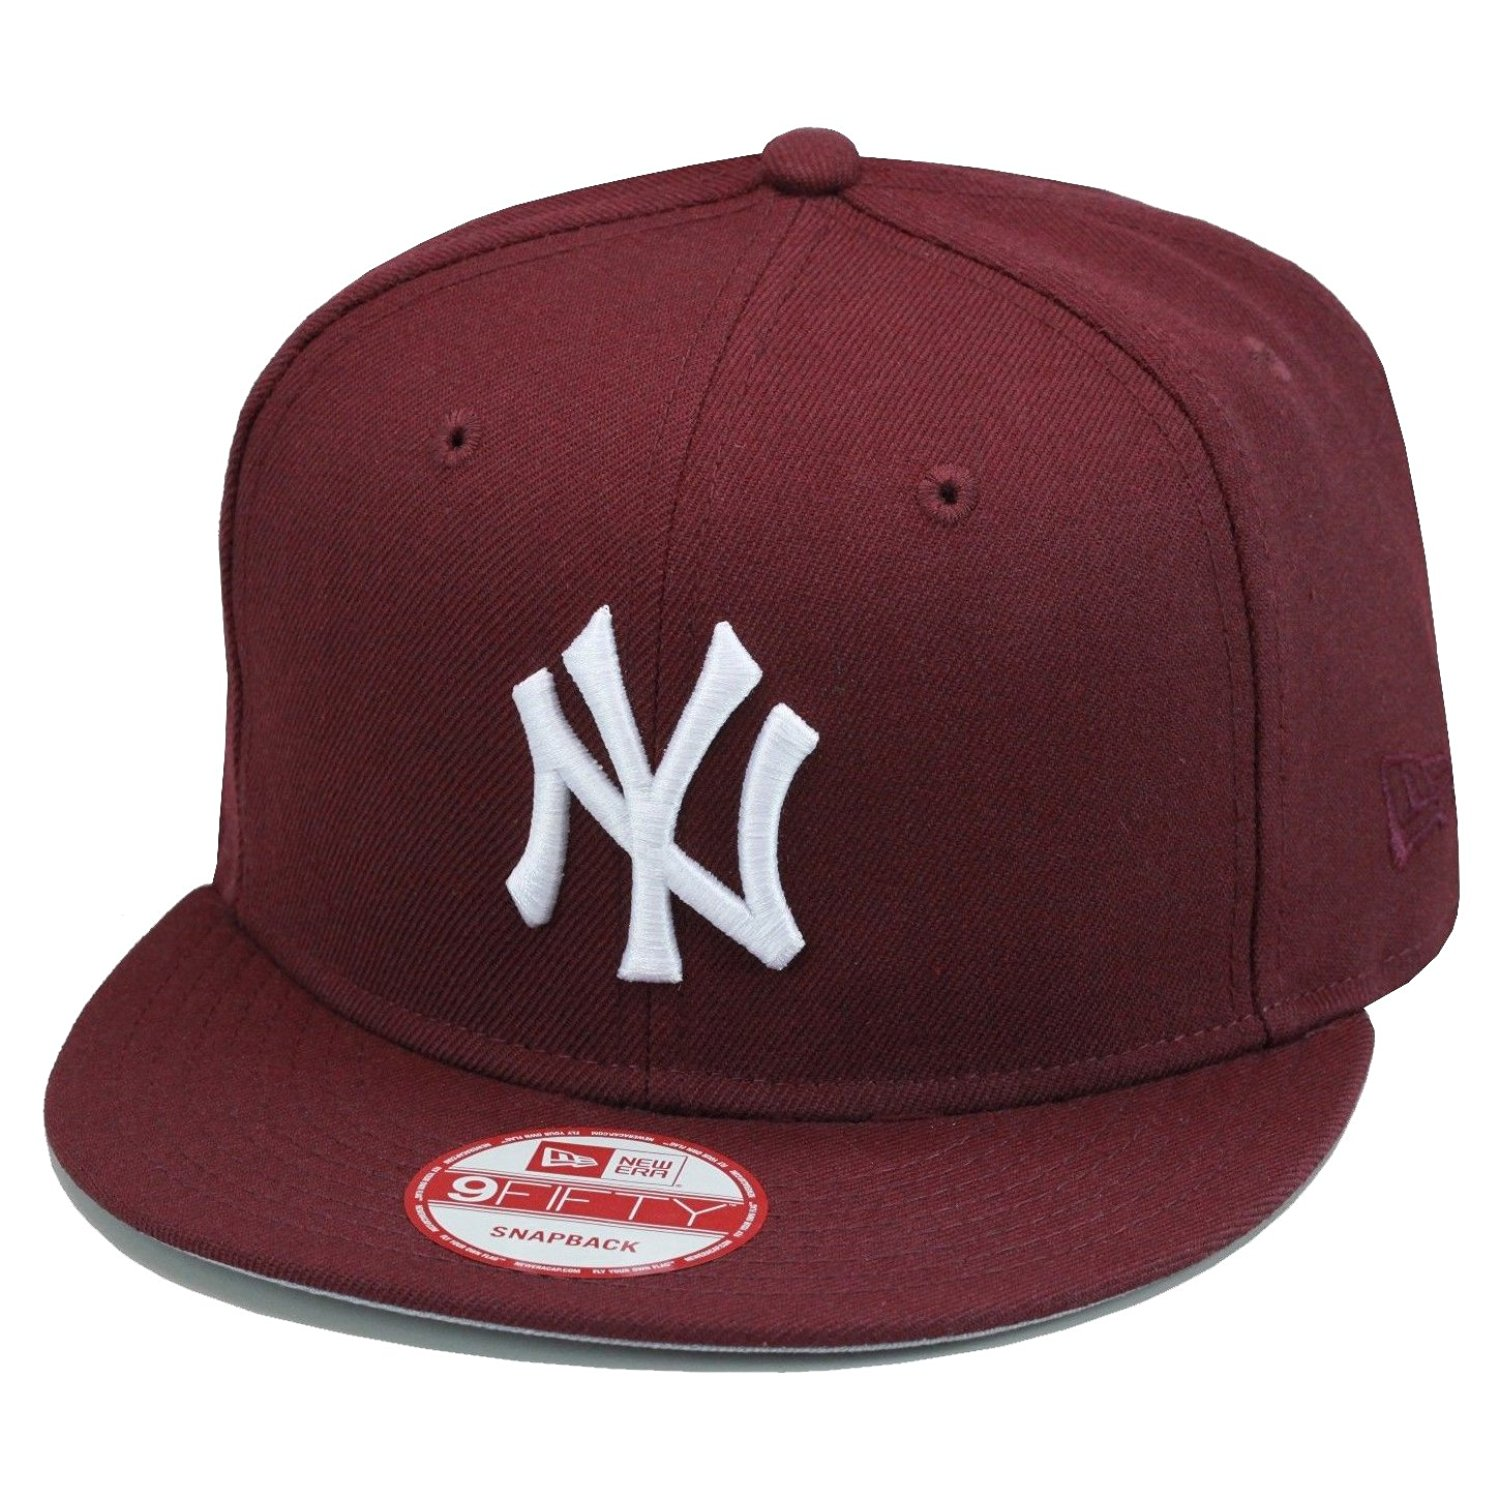 4cf0cc8d206b0 Get Quotations · New Era 9fifty New York Yankees Snapback Hat Cap All  Maroon White MLB Baseball